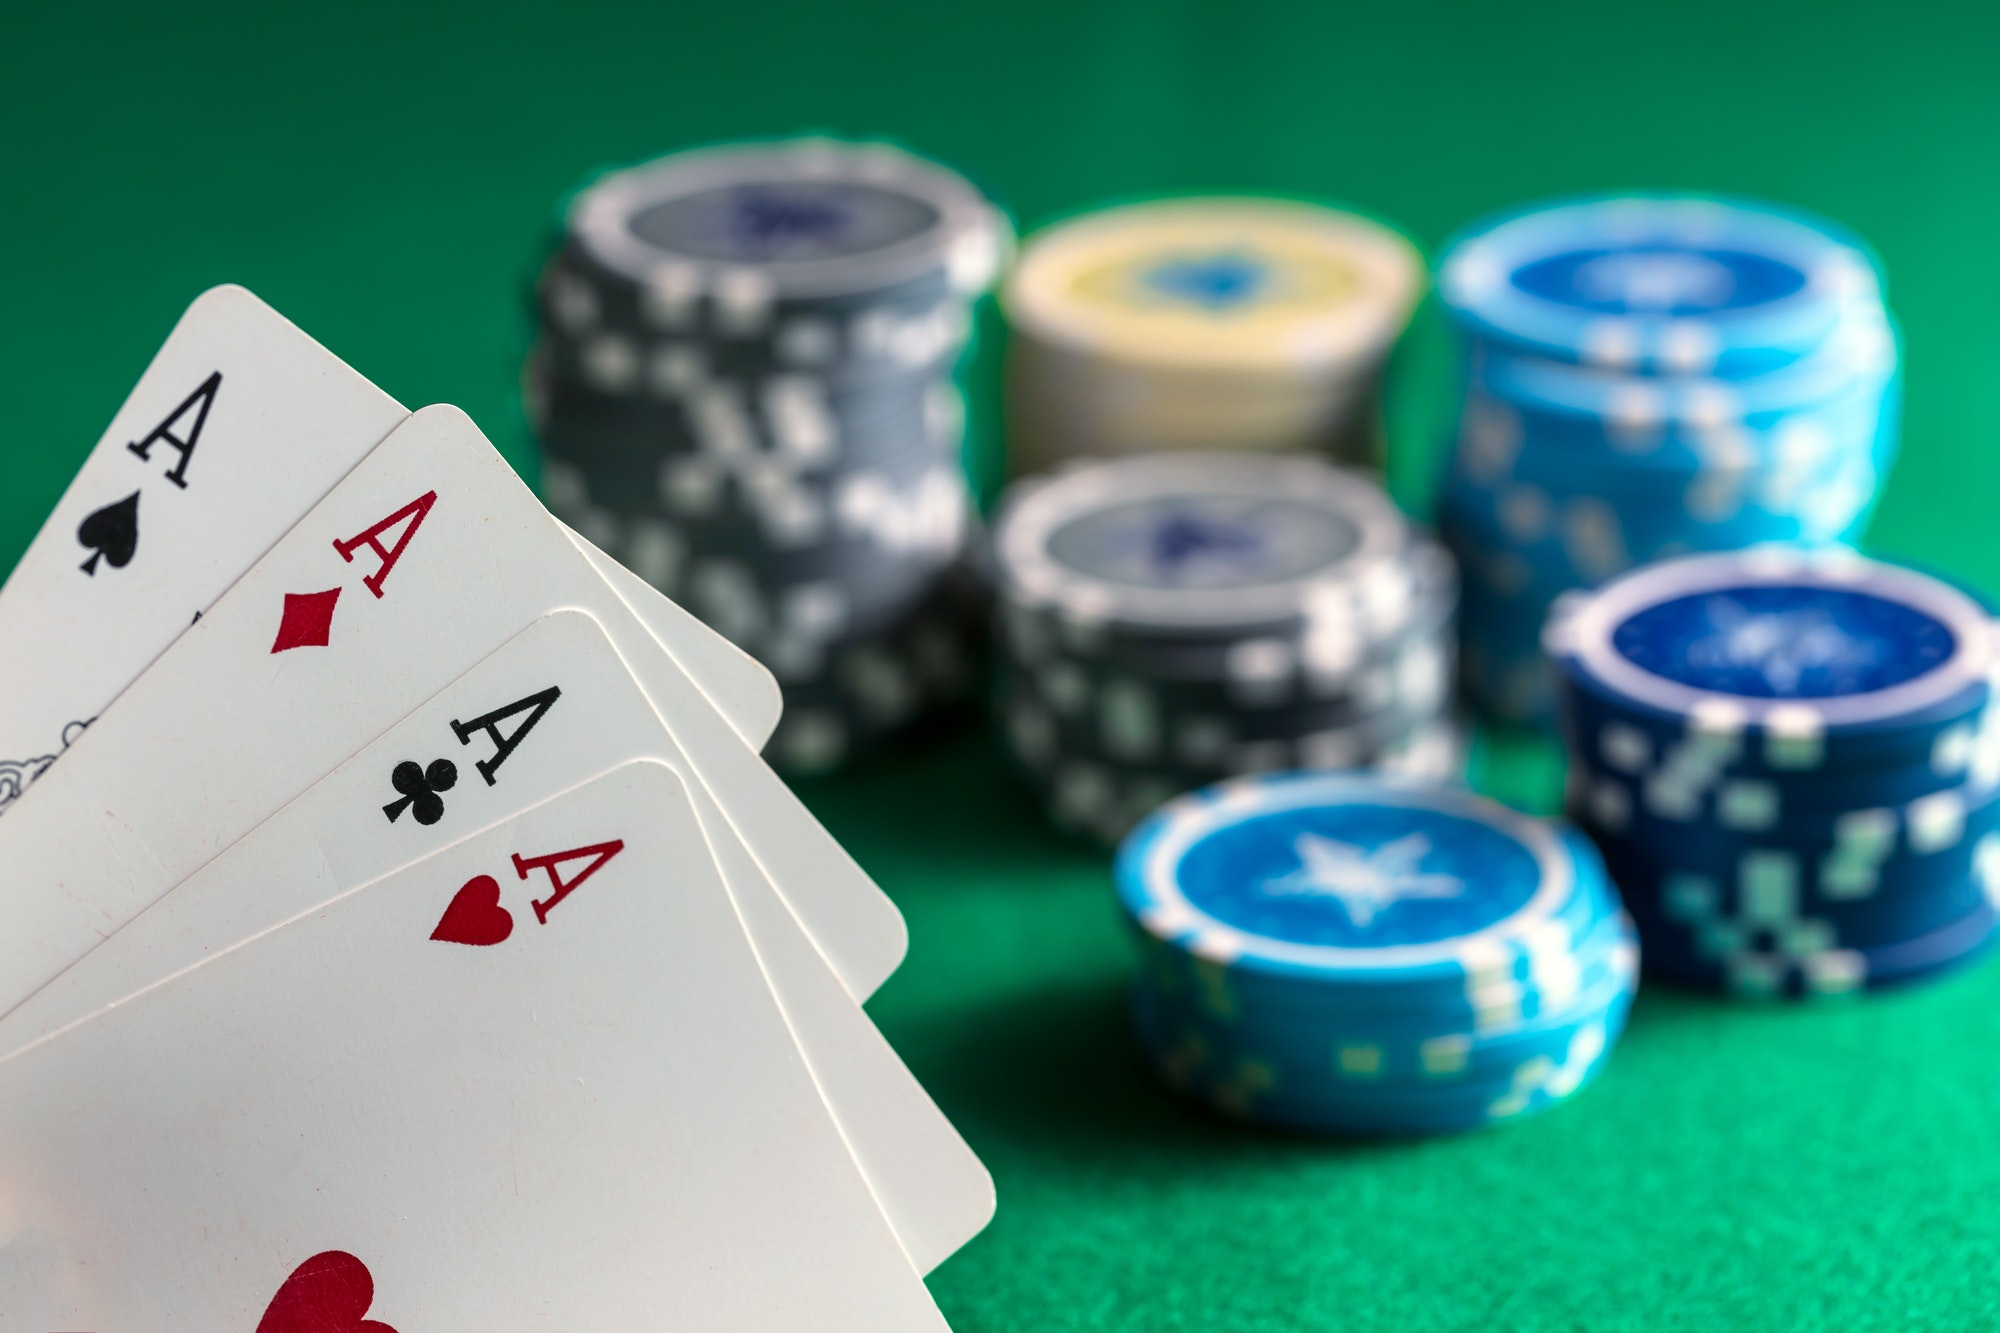 Play Poker Online With Friends For Free